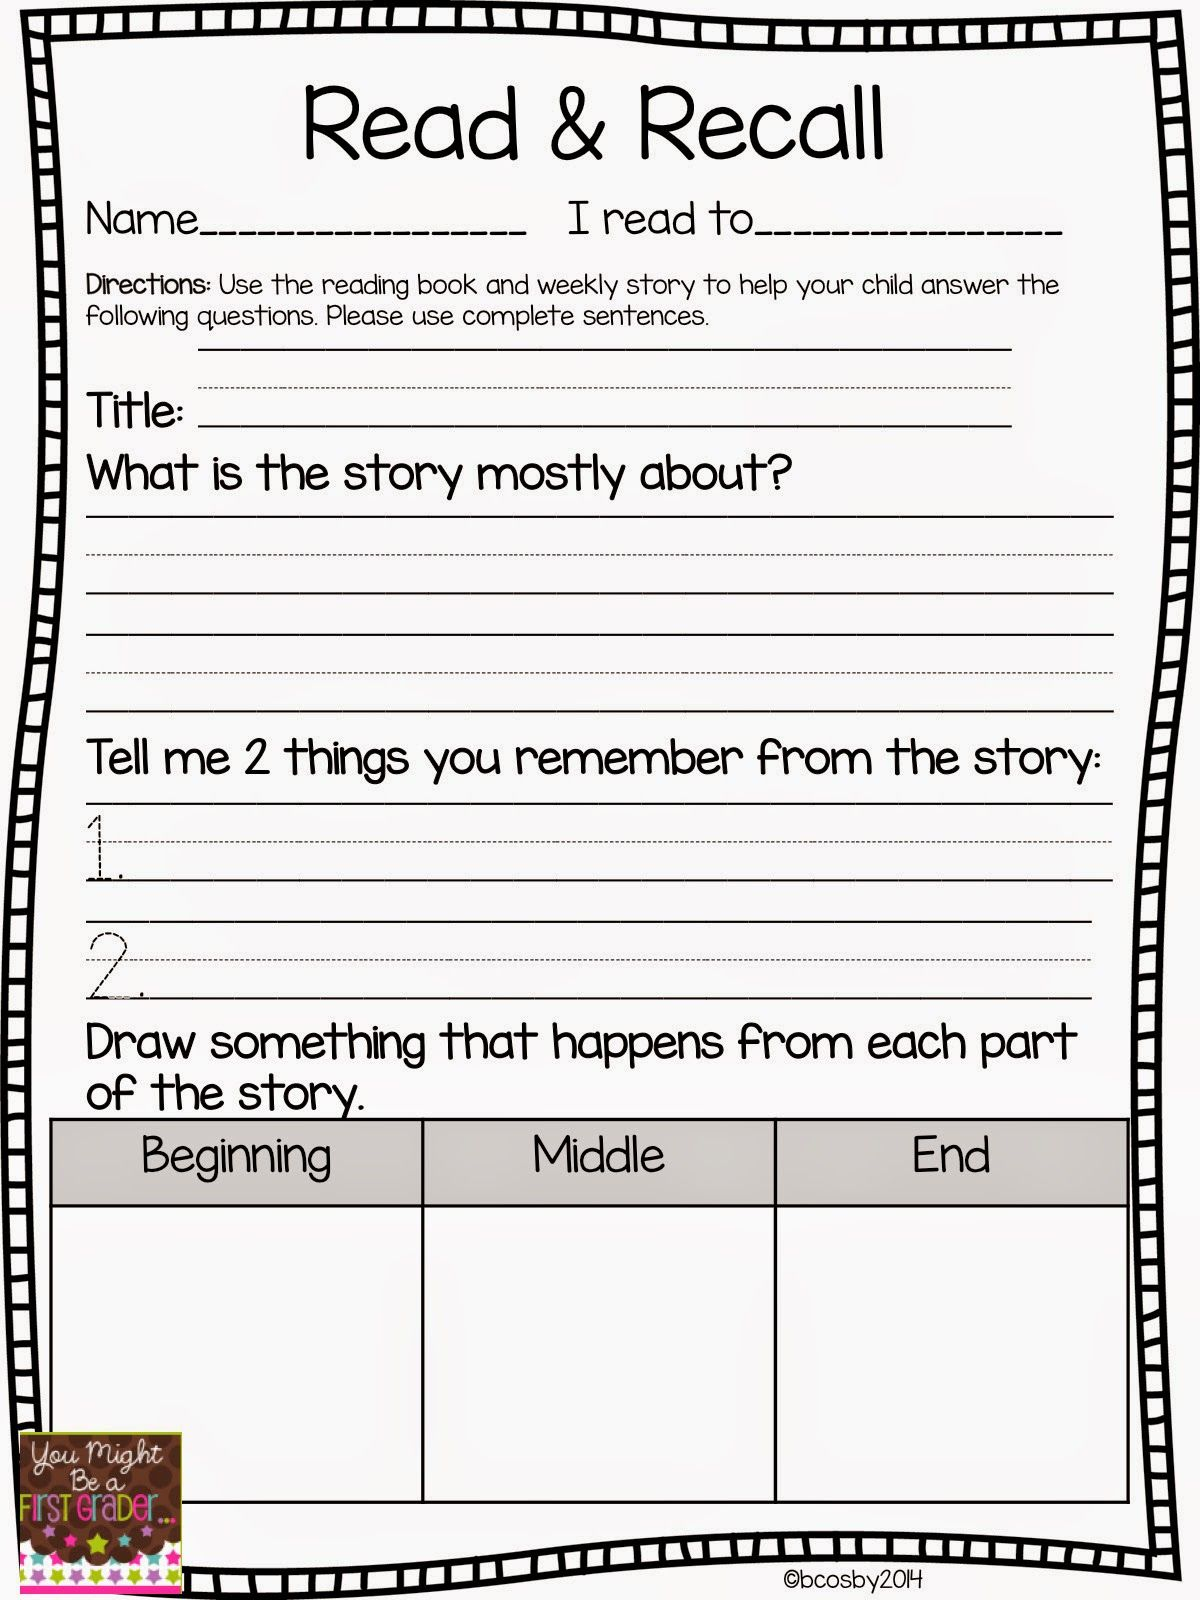 worksheet Reading Comprehension Worksheets Middle School reading comprehension classroom freebies in first grade is something new challenging and difficult to teach because